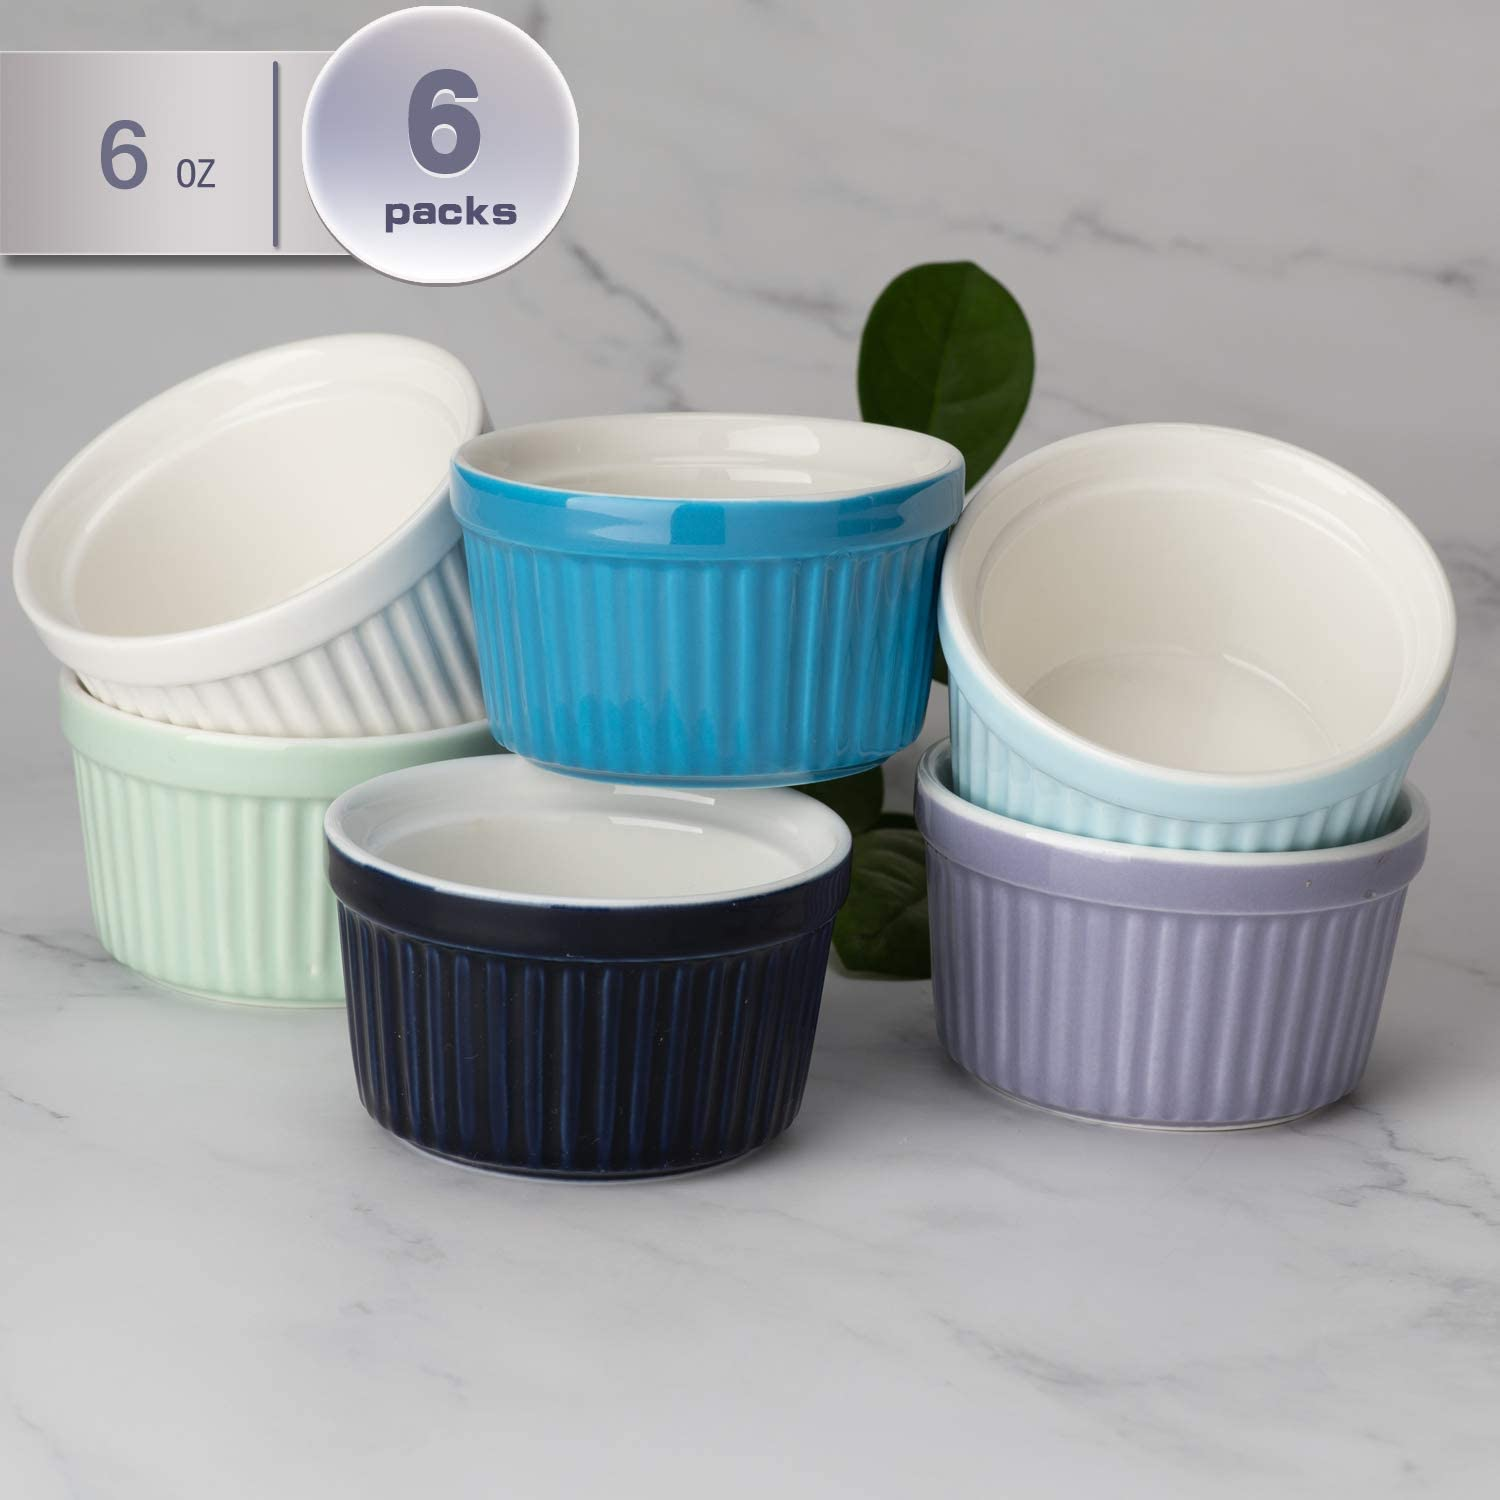 amHomel Porcelain Souffle Dishes Ramekins Bakeware Set, 8 OZ Baking Cups Creme Brulee and Ice Cream, Set of 6, Cold Assorted Color